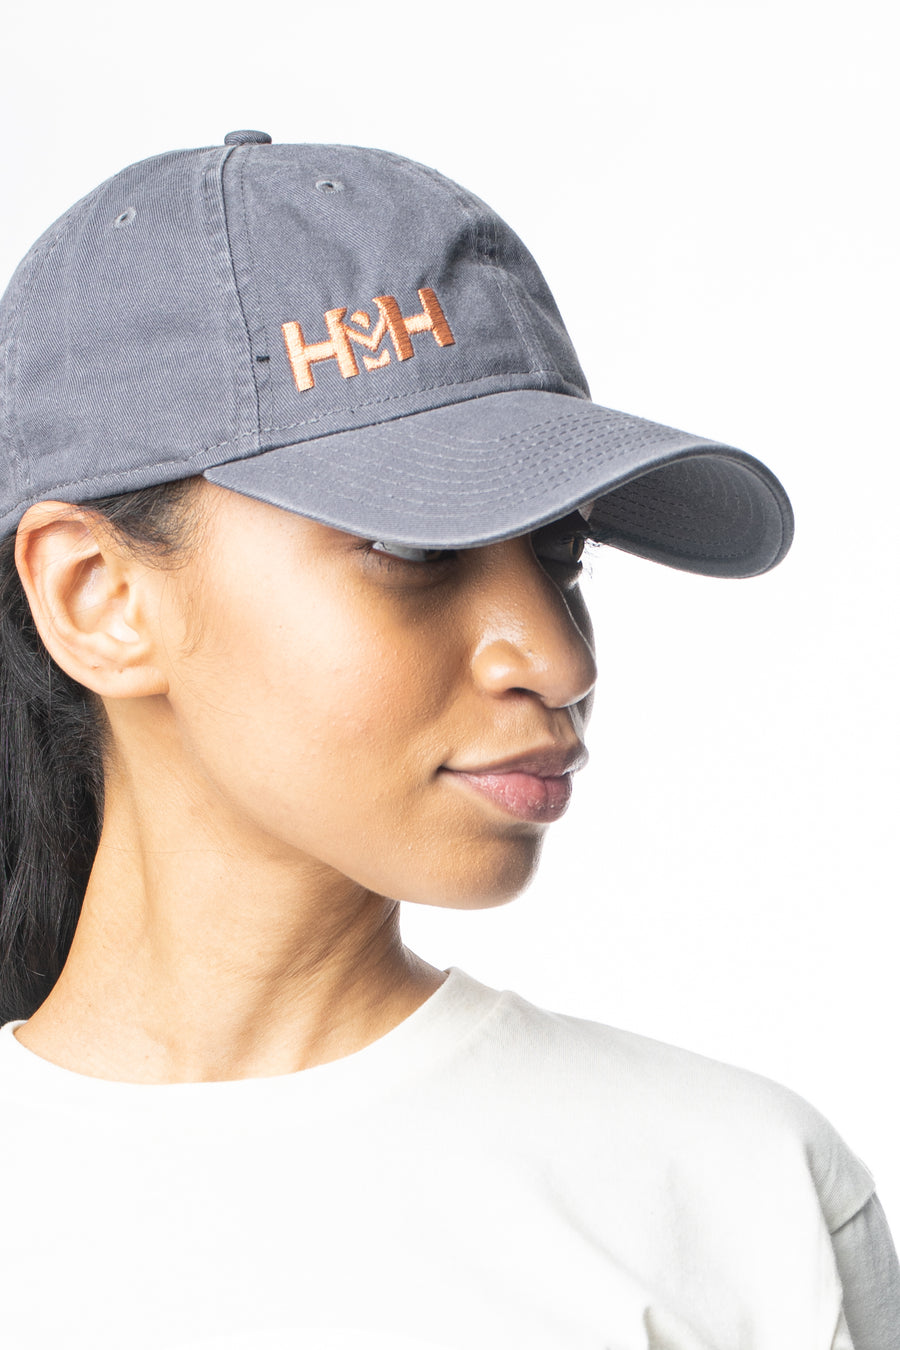 HDMH x New Era 9TWENTY Dad Hat - Grey